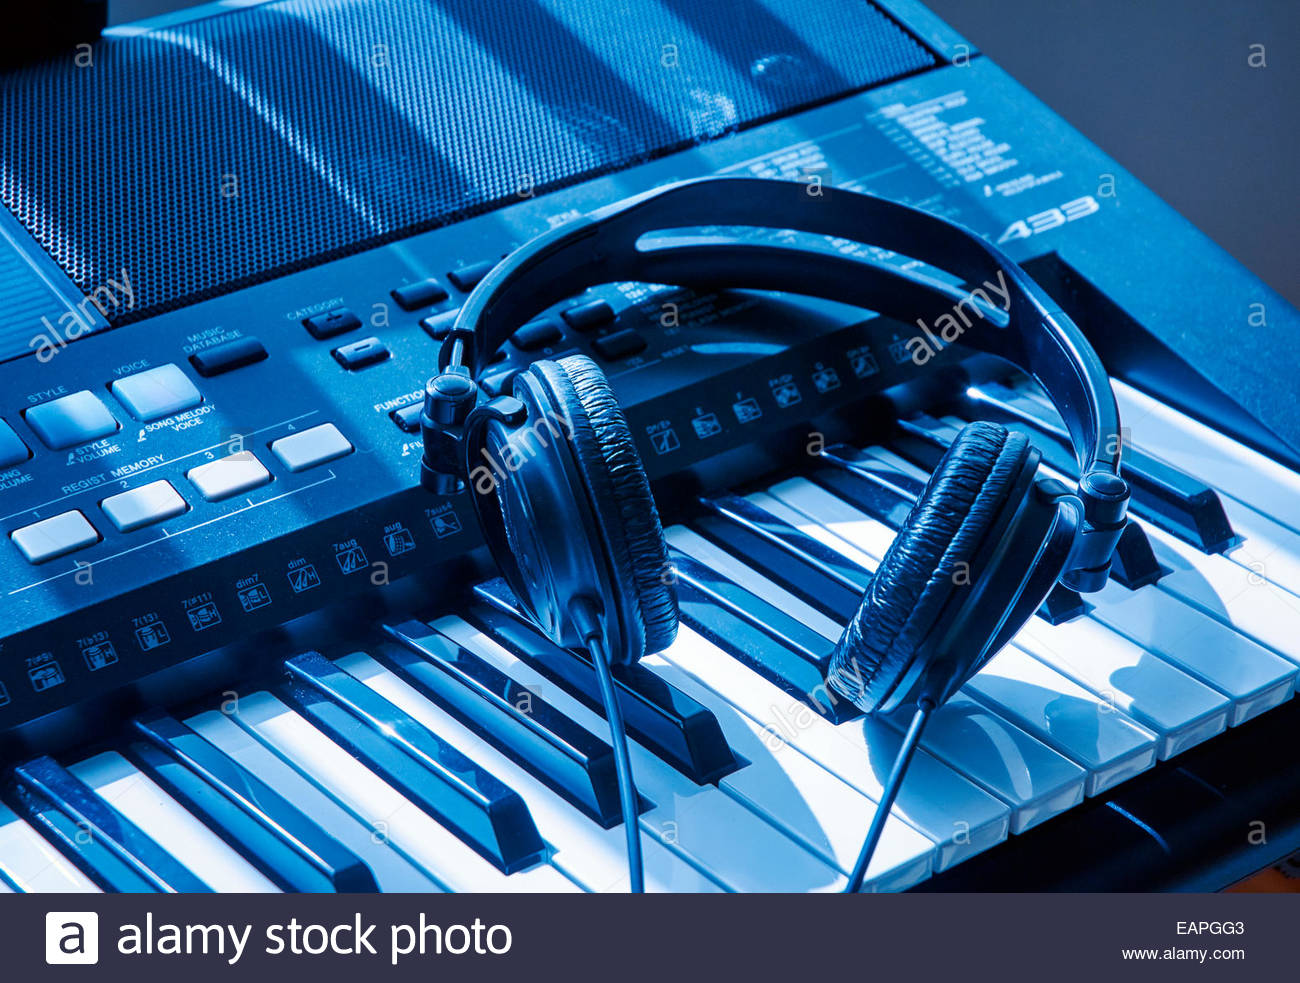 electronic keyboard synthesizer and headphones with black and white keys tinted blue - Stock Image